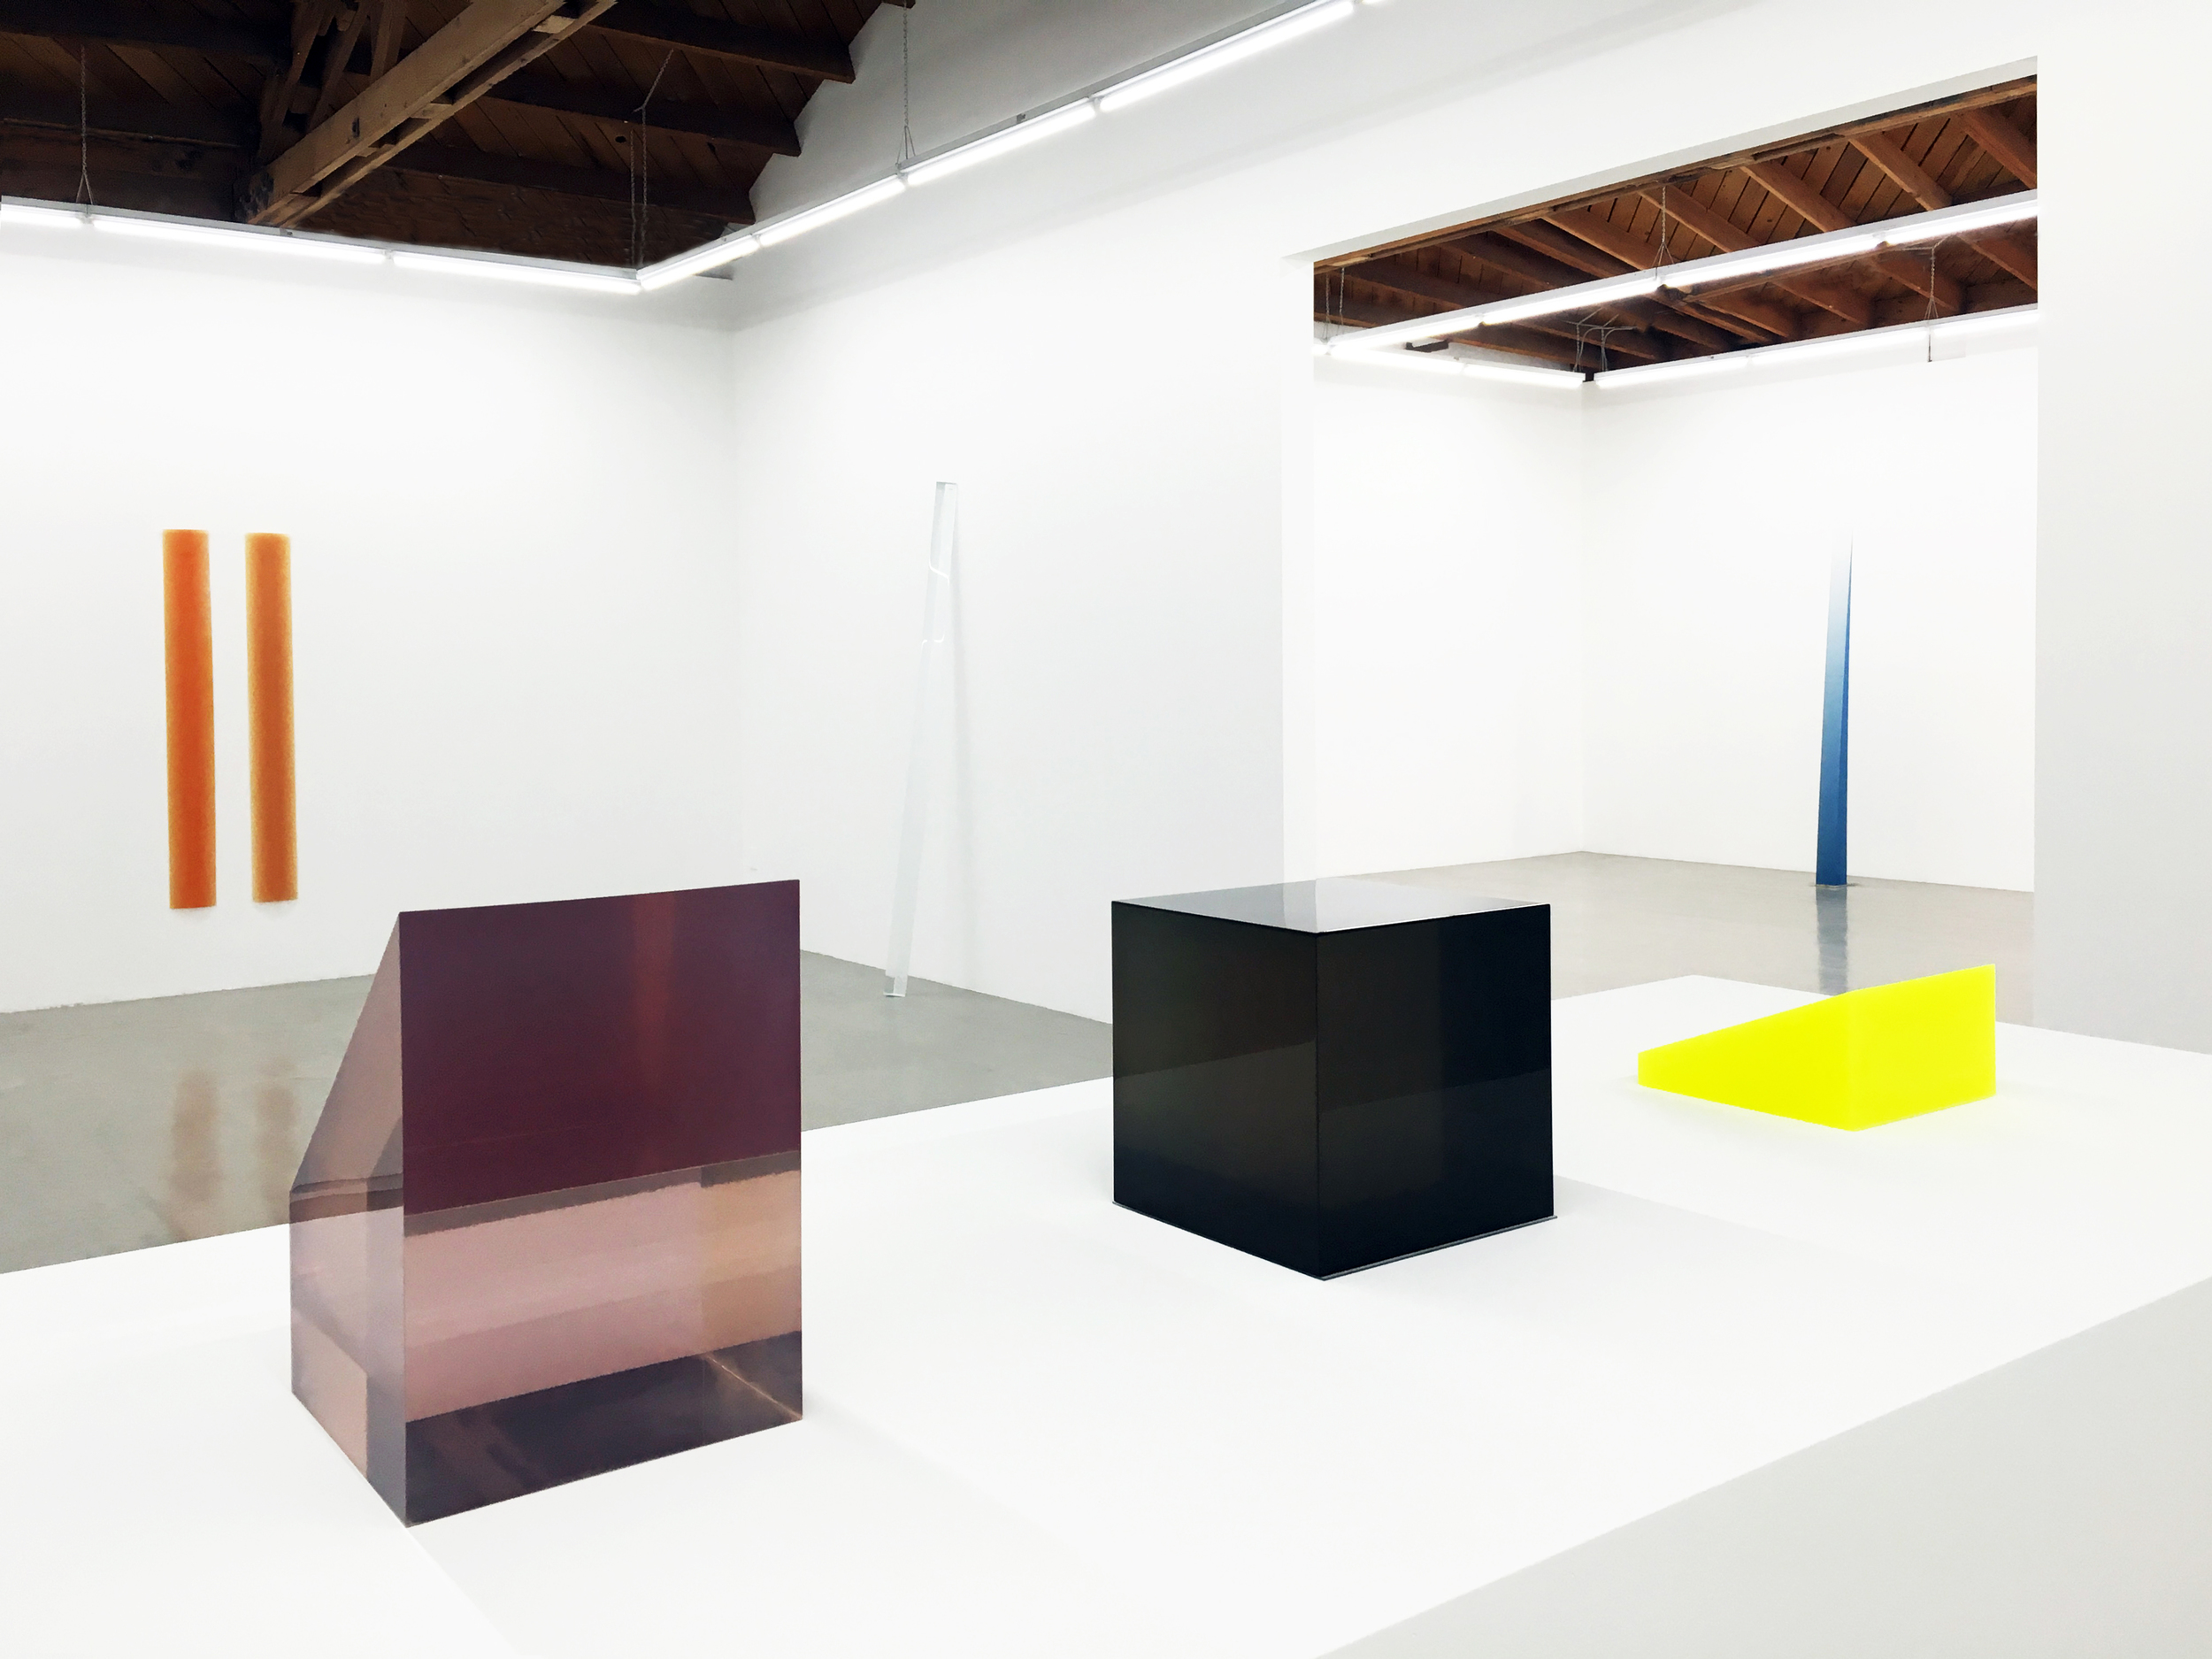 Installation view of Peter Alexander's various colored resin sculptures